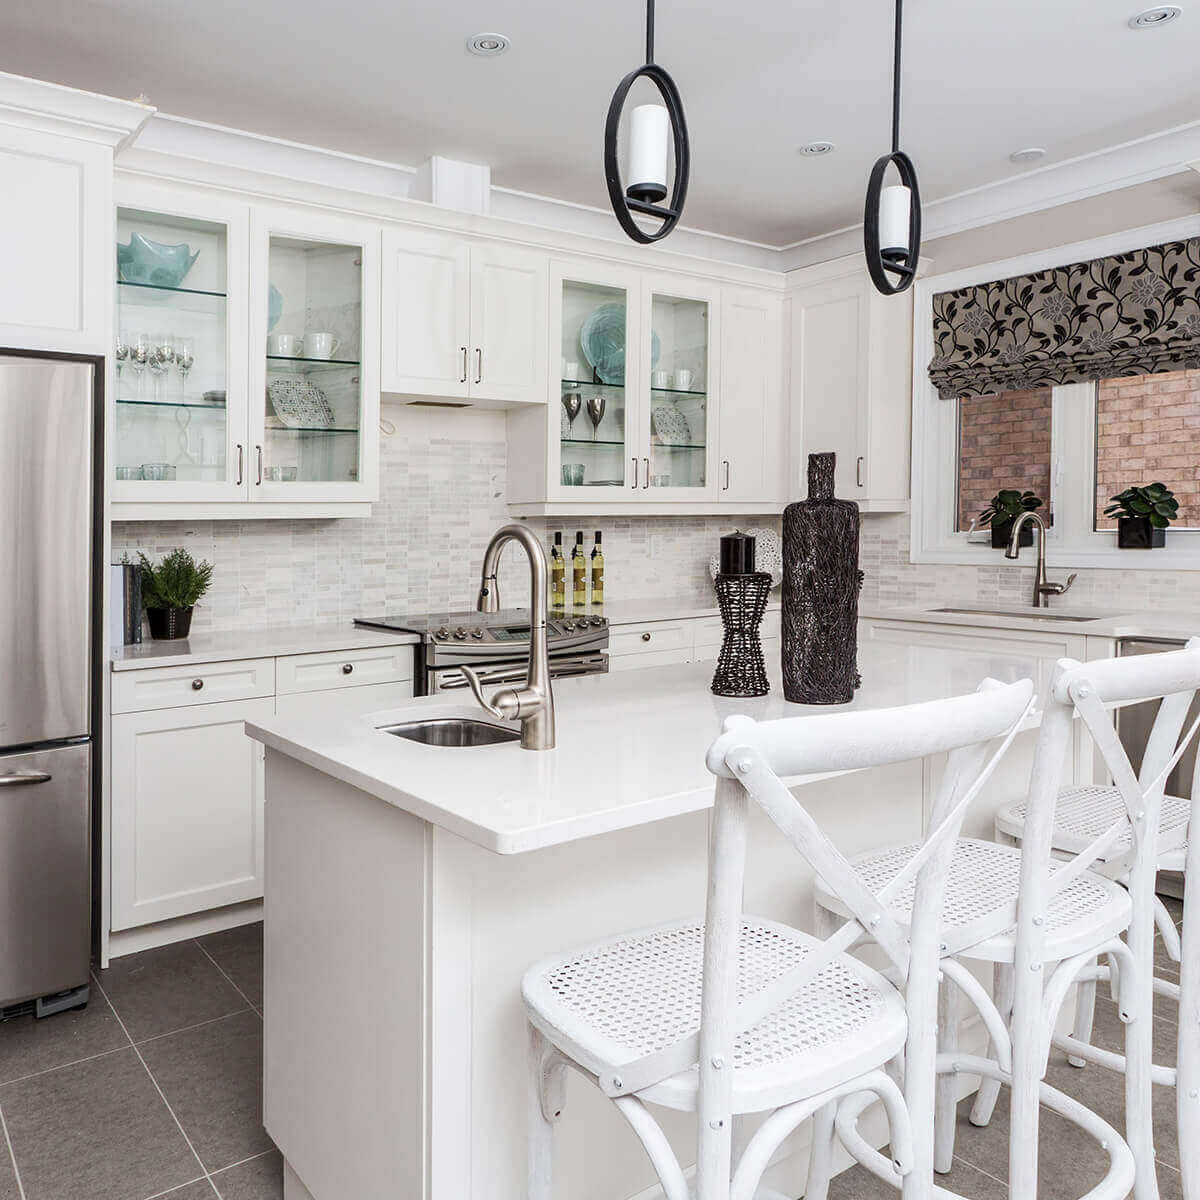 bright white kitchen fitted with white shaker cabinets. some of the shaker cabinets have glass doors, displaying dishware and decor inside. to match the cabinets, a bright white island with white countertops and matching chairs sits in the center of the room